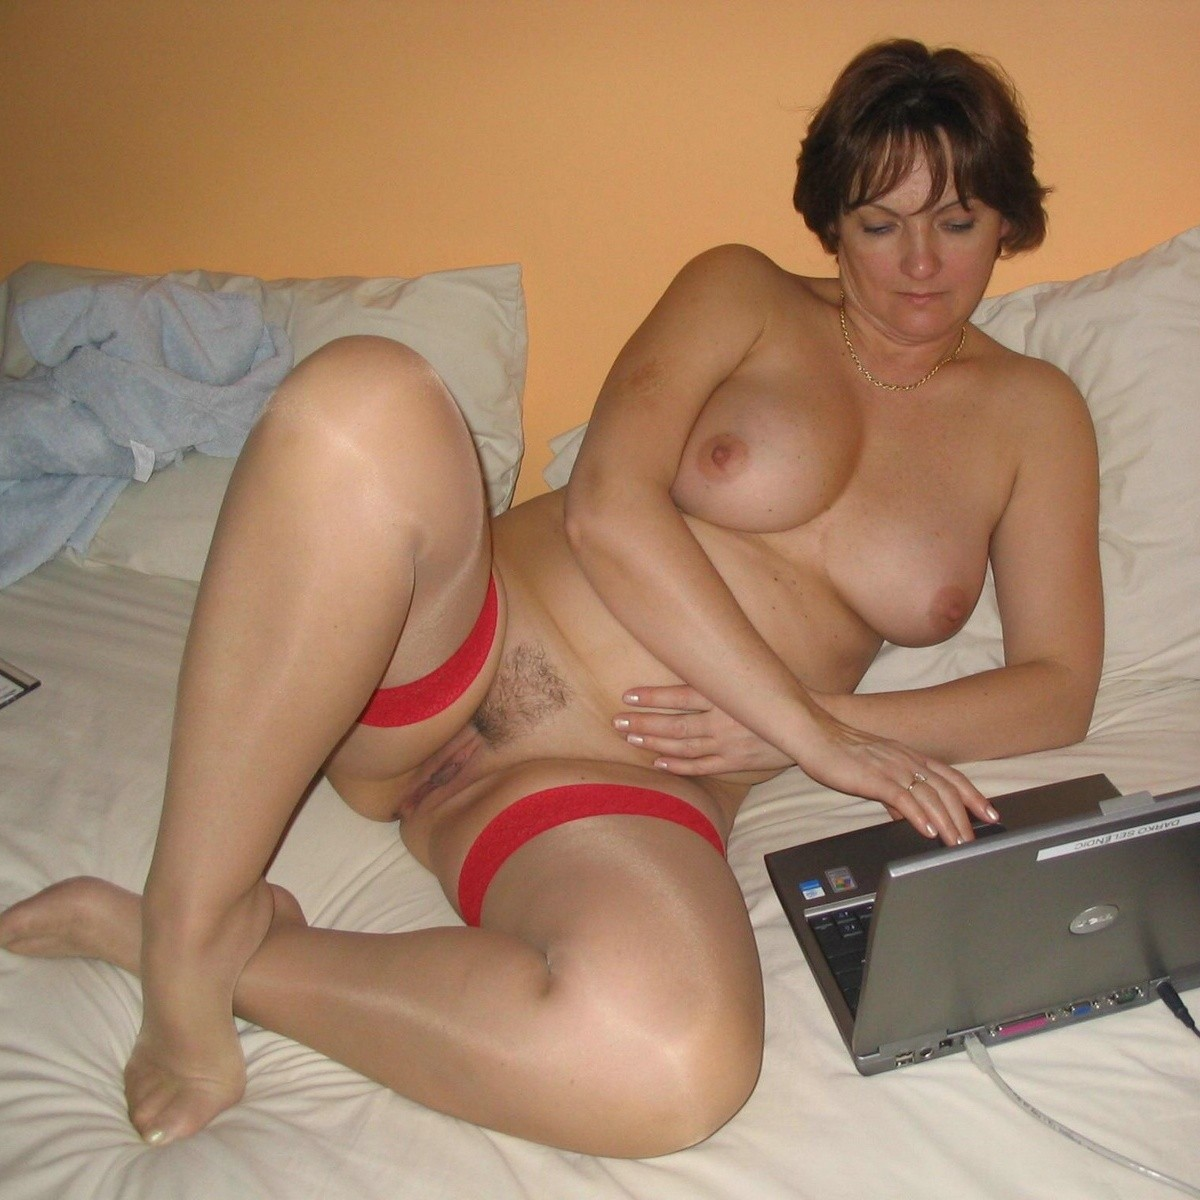 Amateur milf striping vids